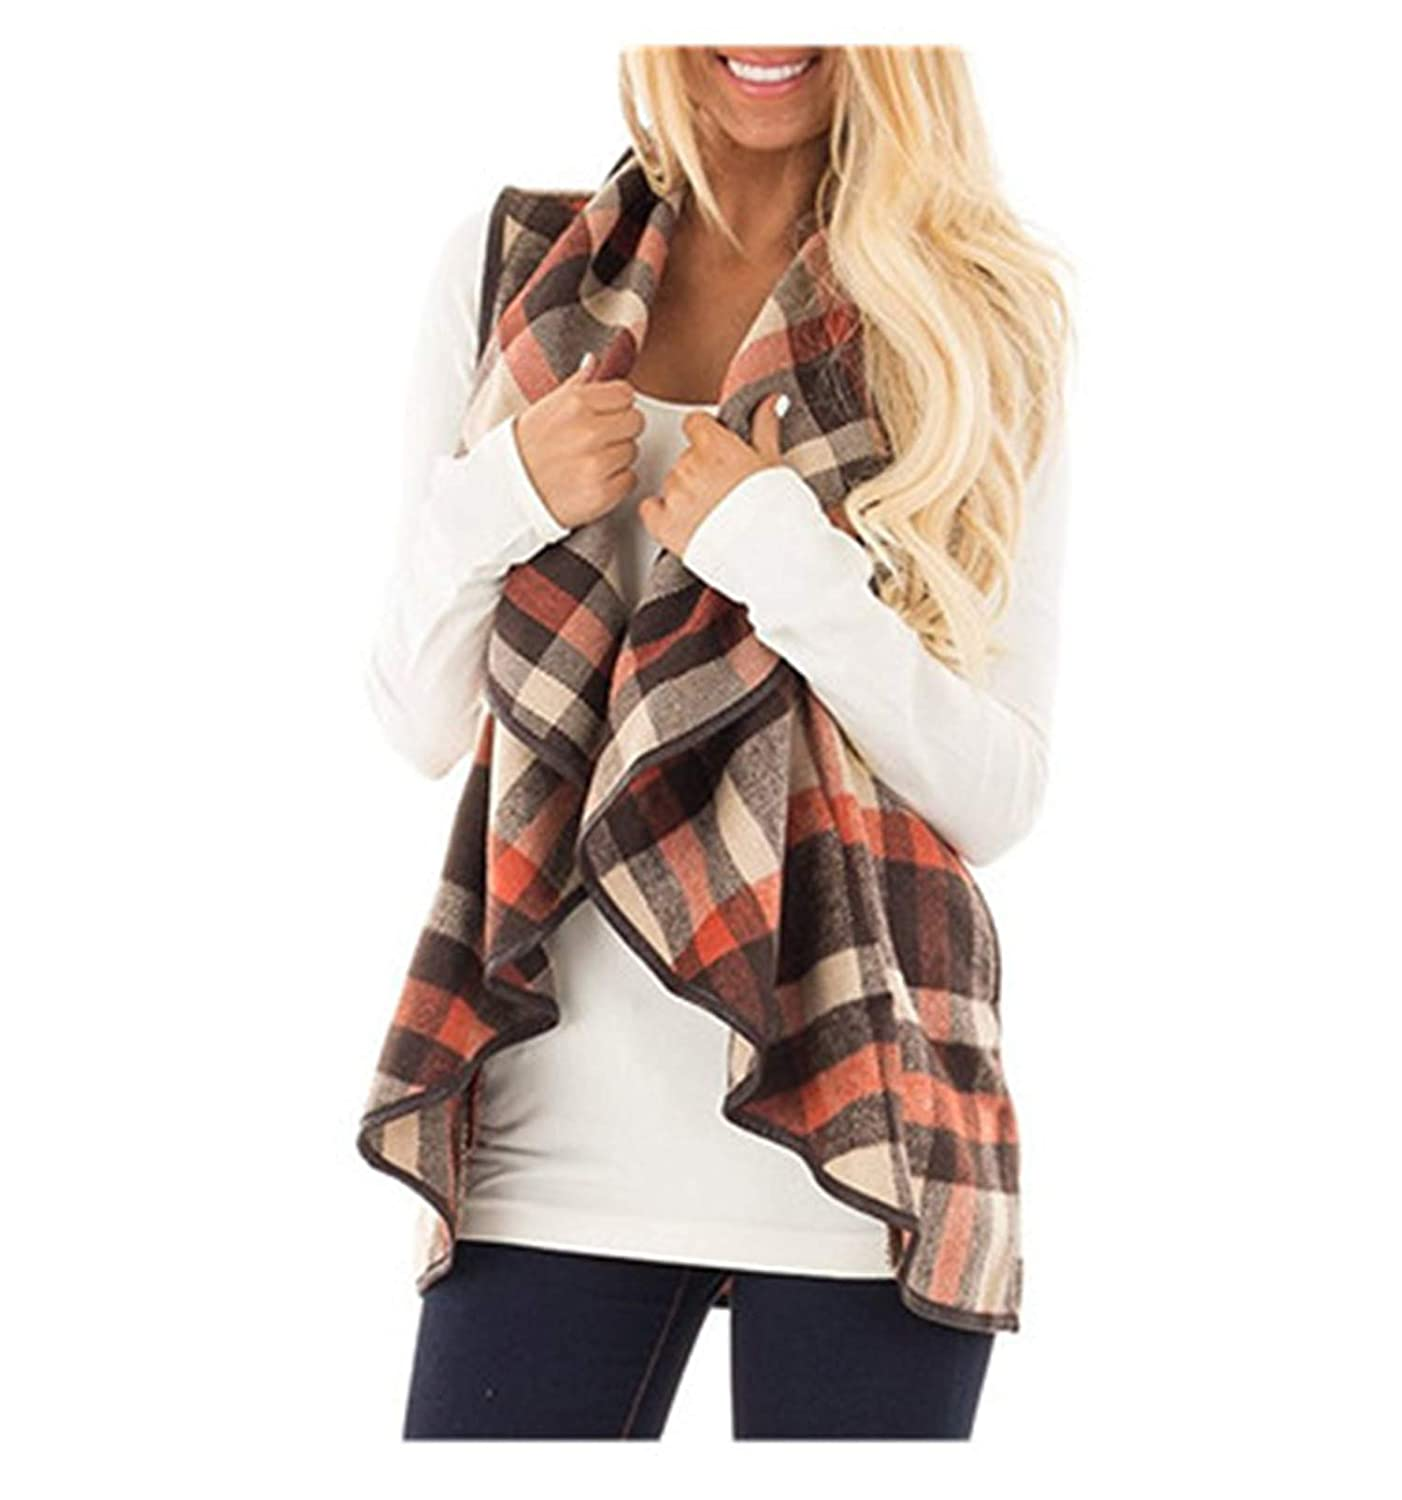 Rick Rogers Fashion Vest Winter Basic Coat Women Coats Jackets Plaid